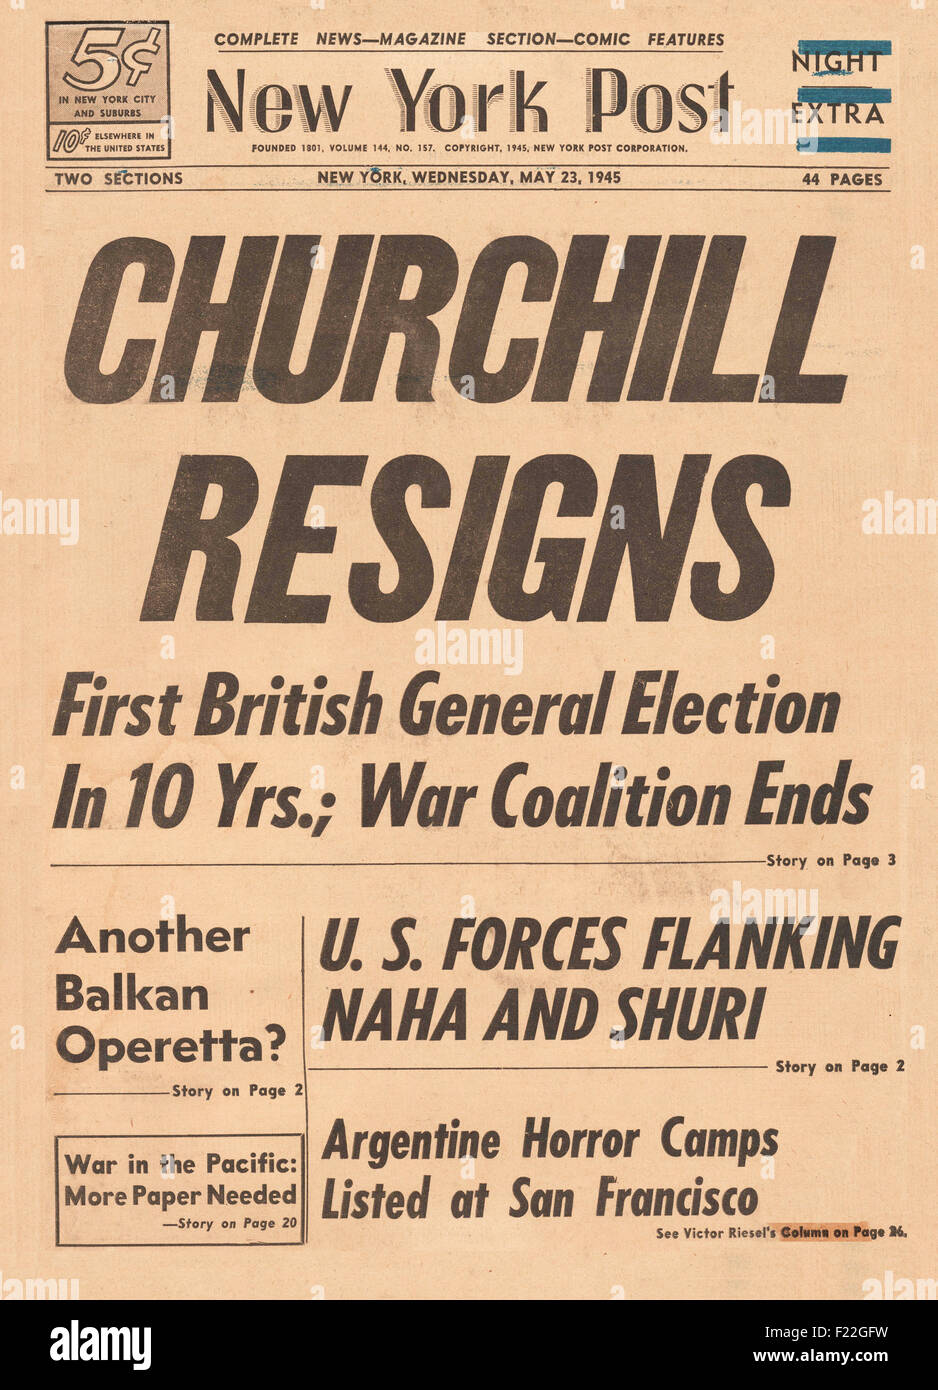 1945 New York Post front page reporting Churchill and British Government Resign - Stock Image